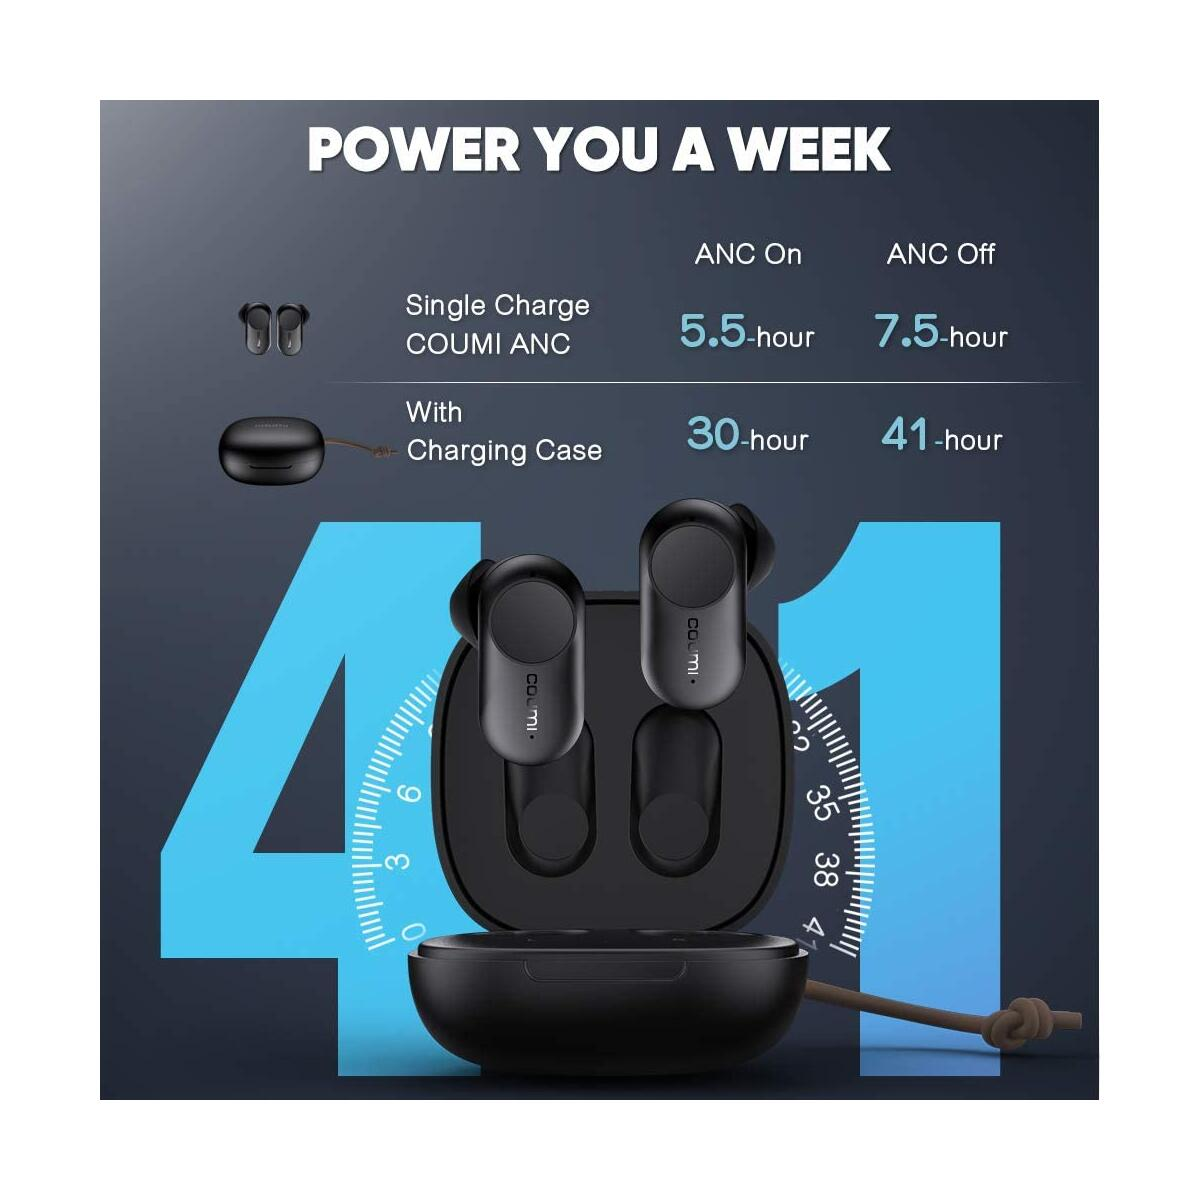 Active Noise Cancelling Wireless Earbuds,[Upgraded] Bluetooth True Wireless Earbuds with 4 Mics,Touch Control,41Hrs,USB-C Charging Case,IPX7 Waterproof TWS Bass Earbuds for Work,Running,Travel(Black)